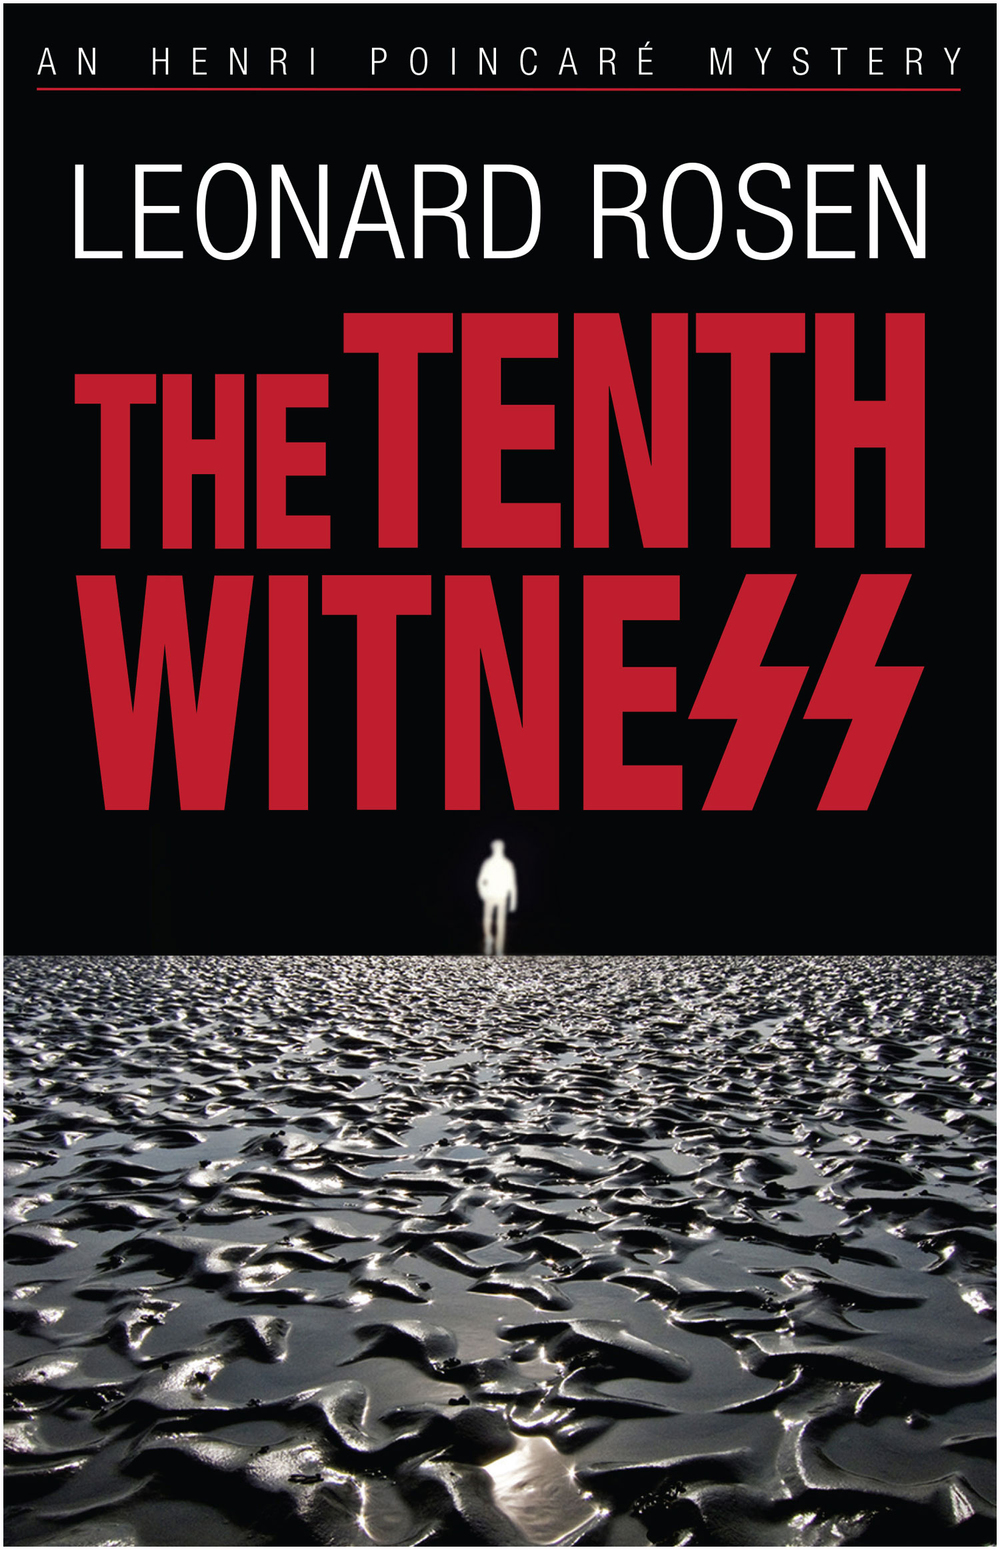 THE RTENTH WITNESS